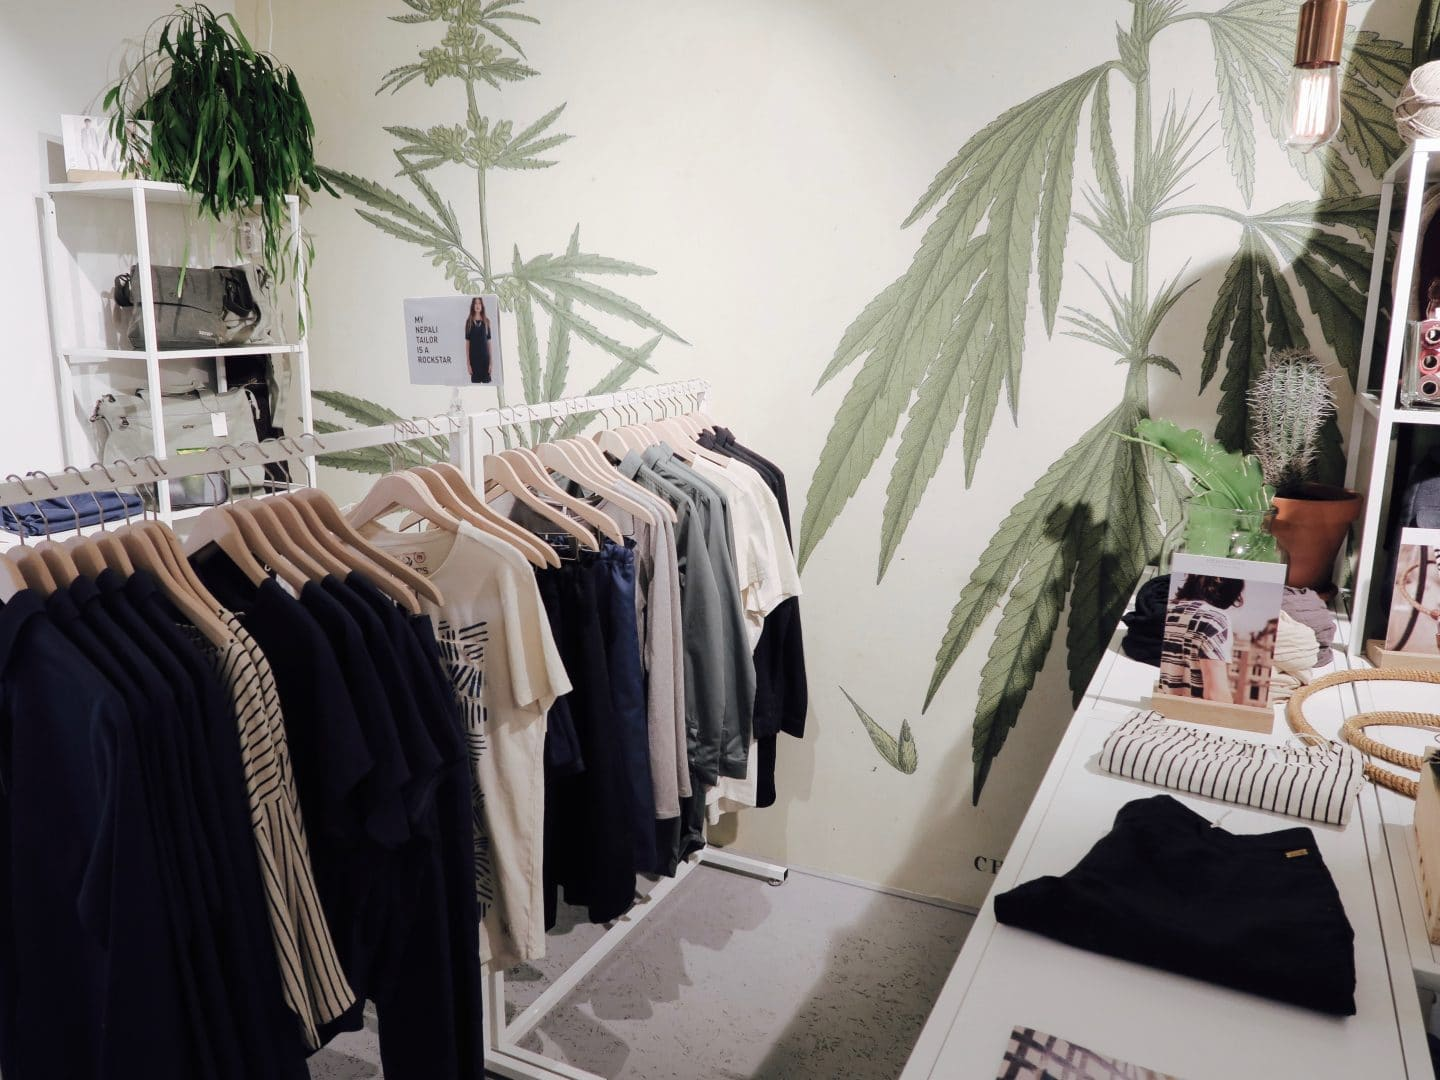 Hemp clothing at Hempstory